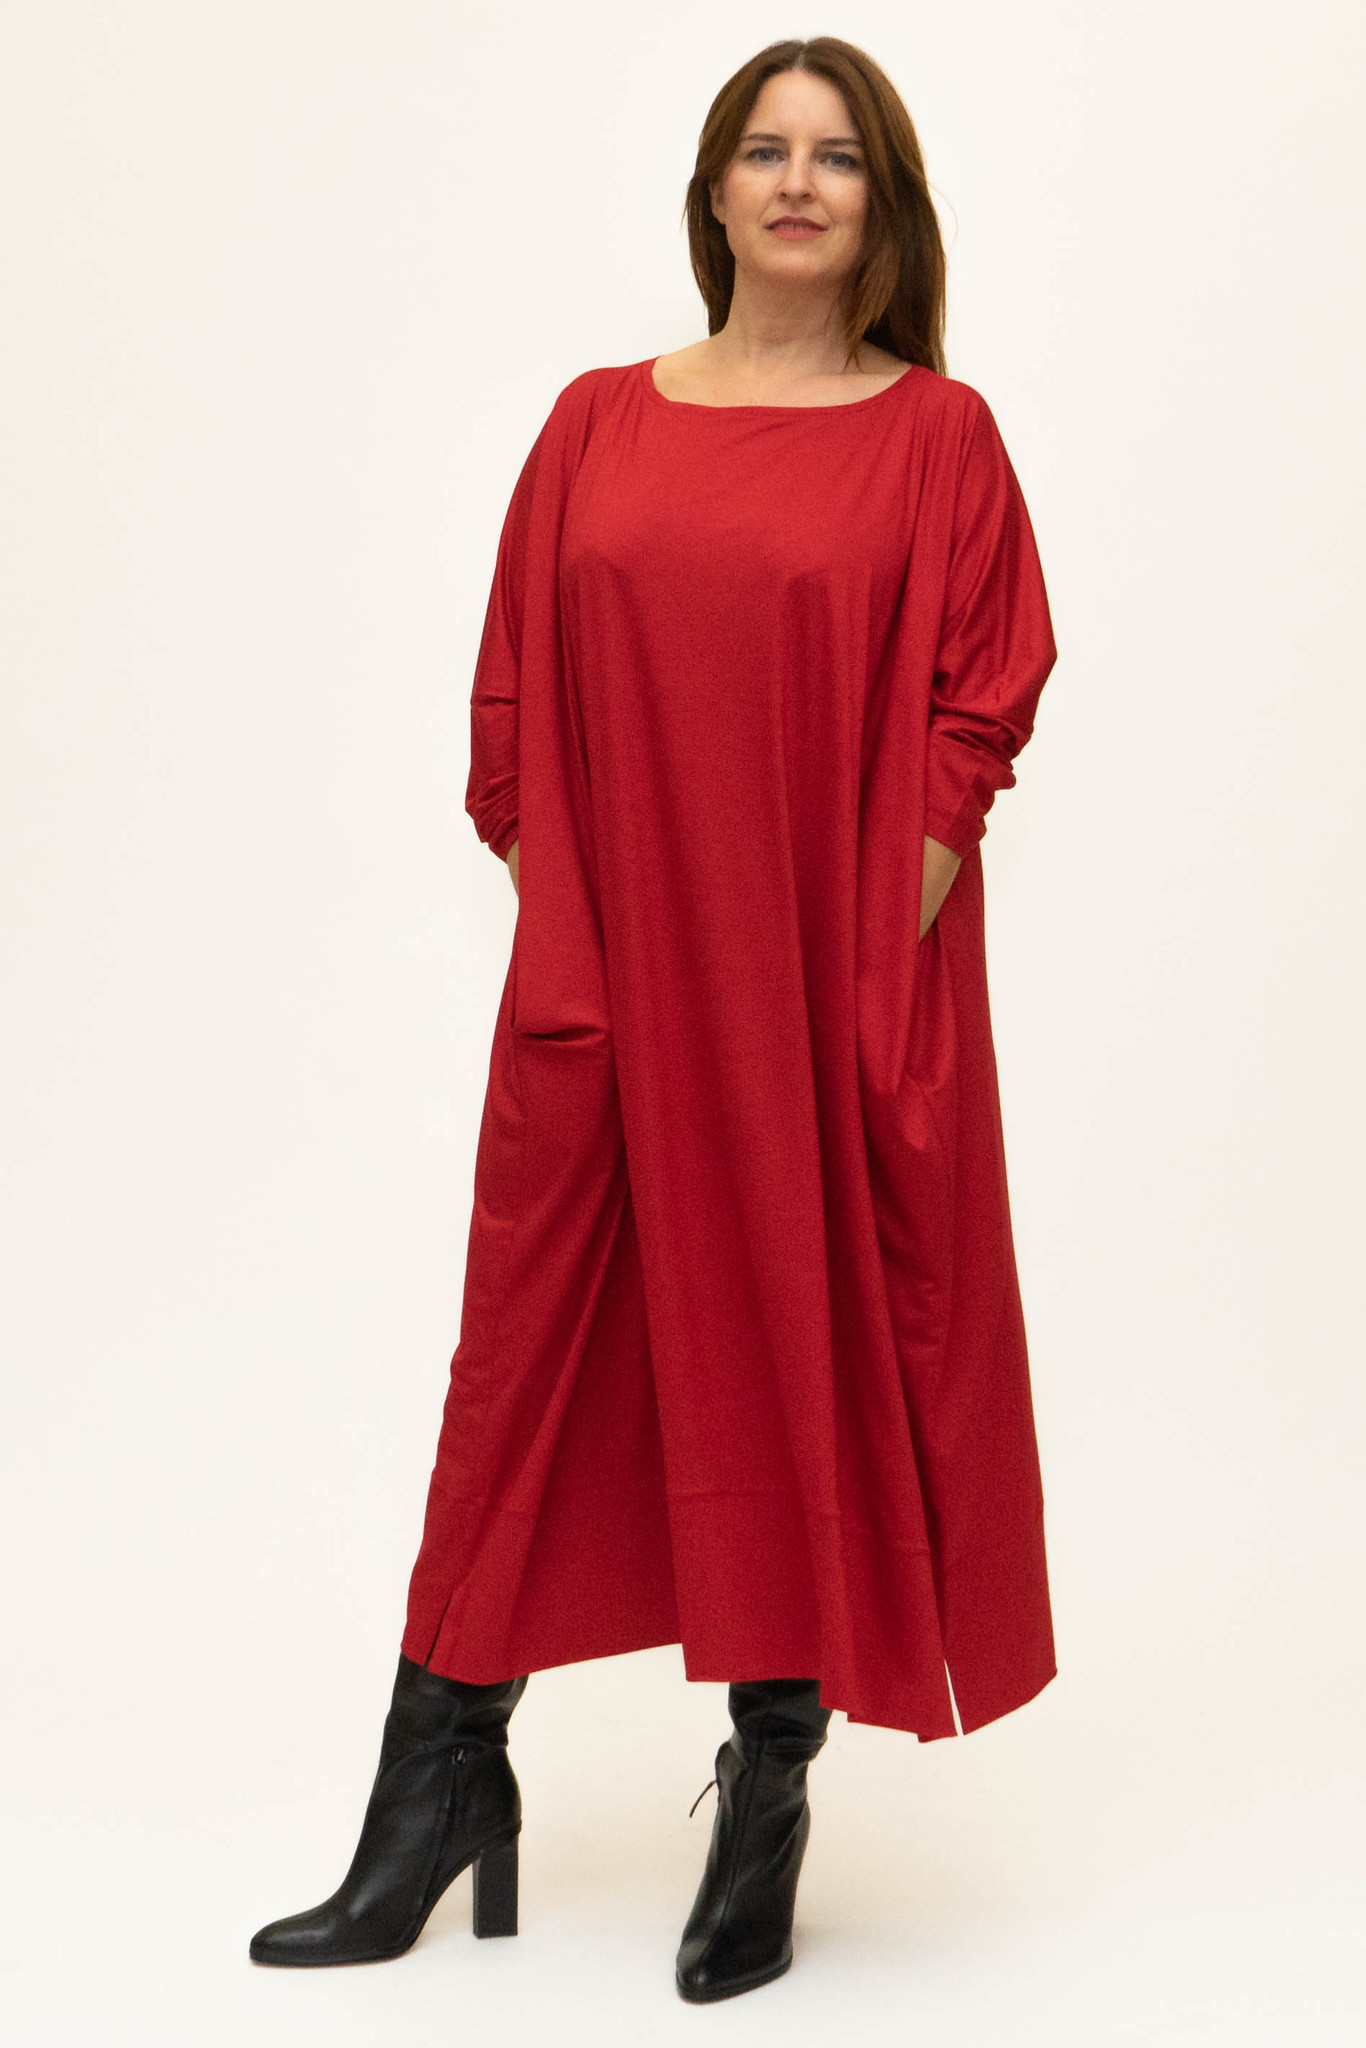 MAAYAN Dress in Viscose-Jersey-1